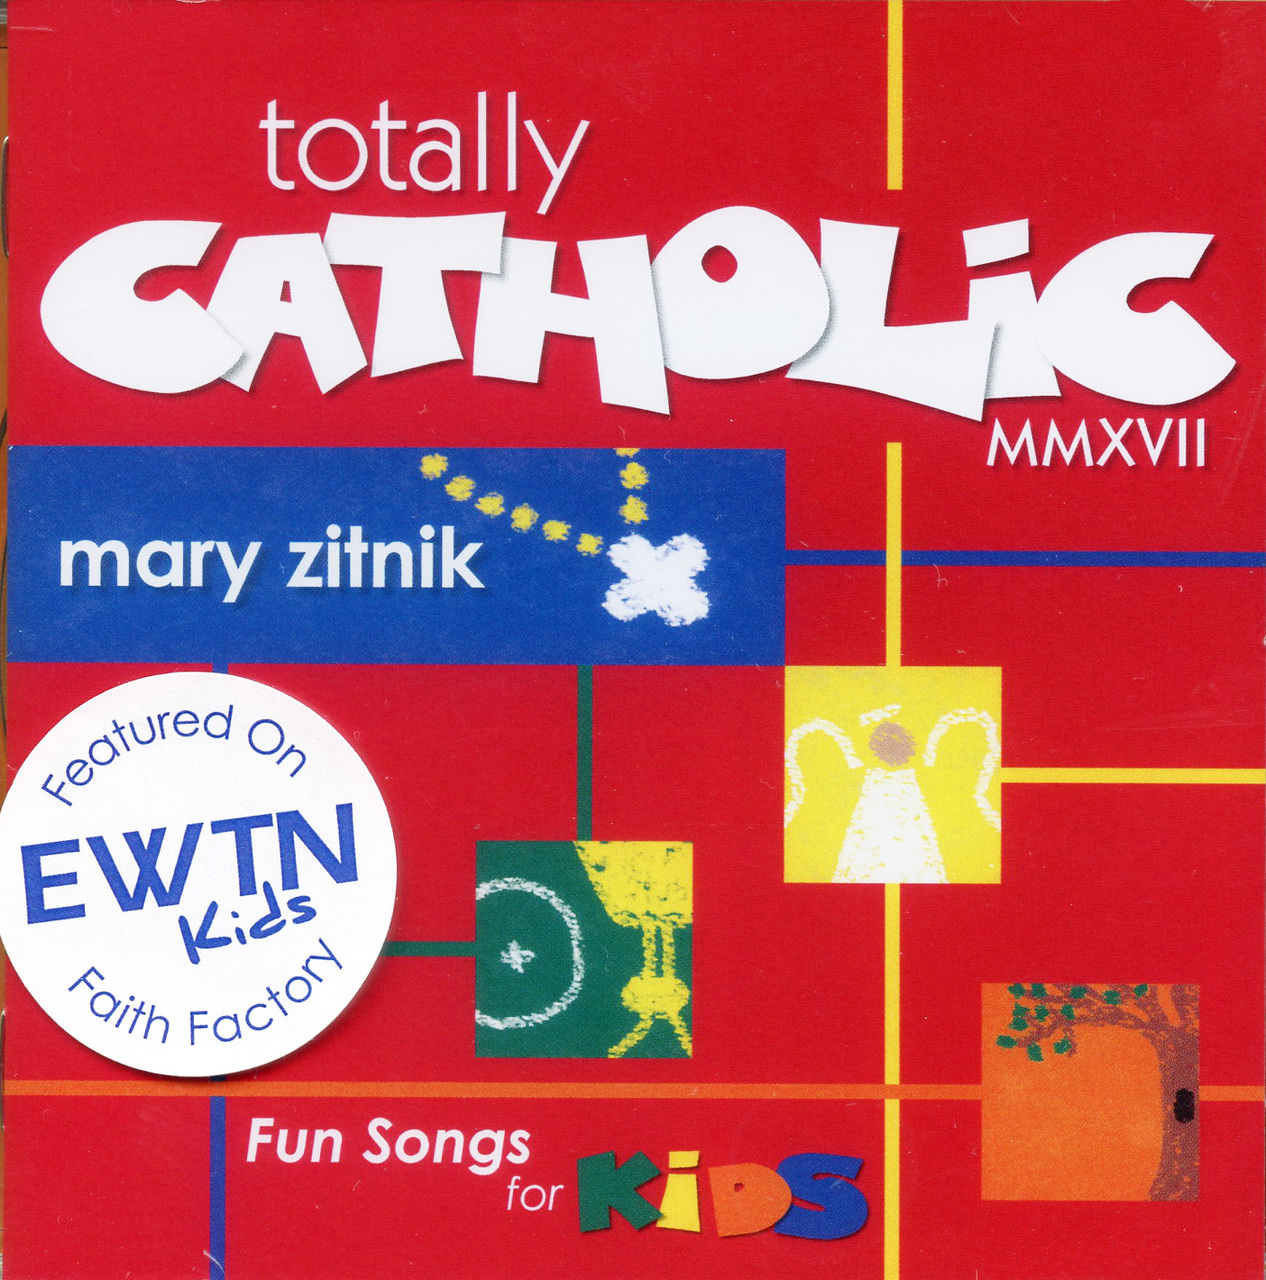 Totally catholic mmxvll   fun songs for kids by mary zitnik